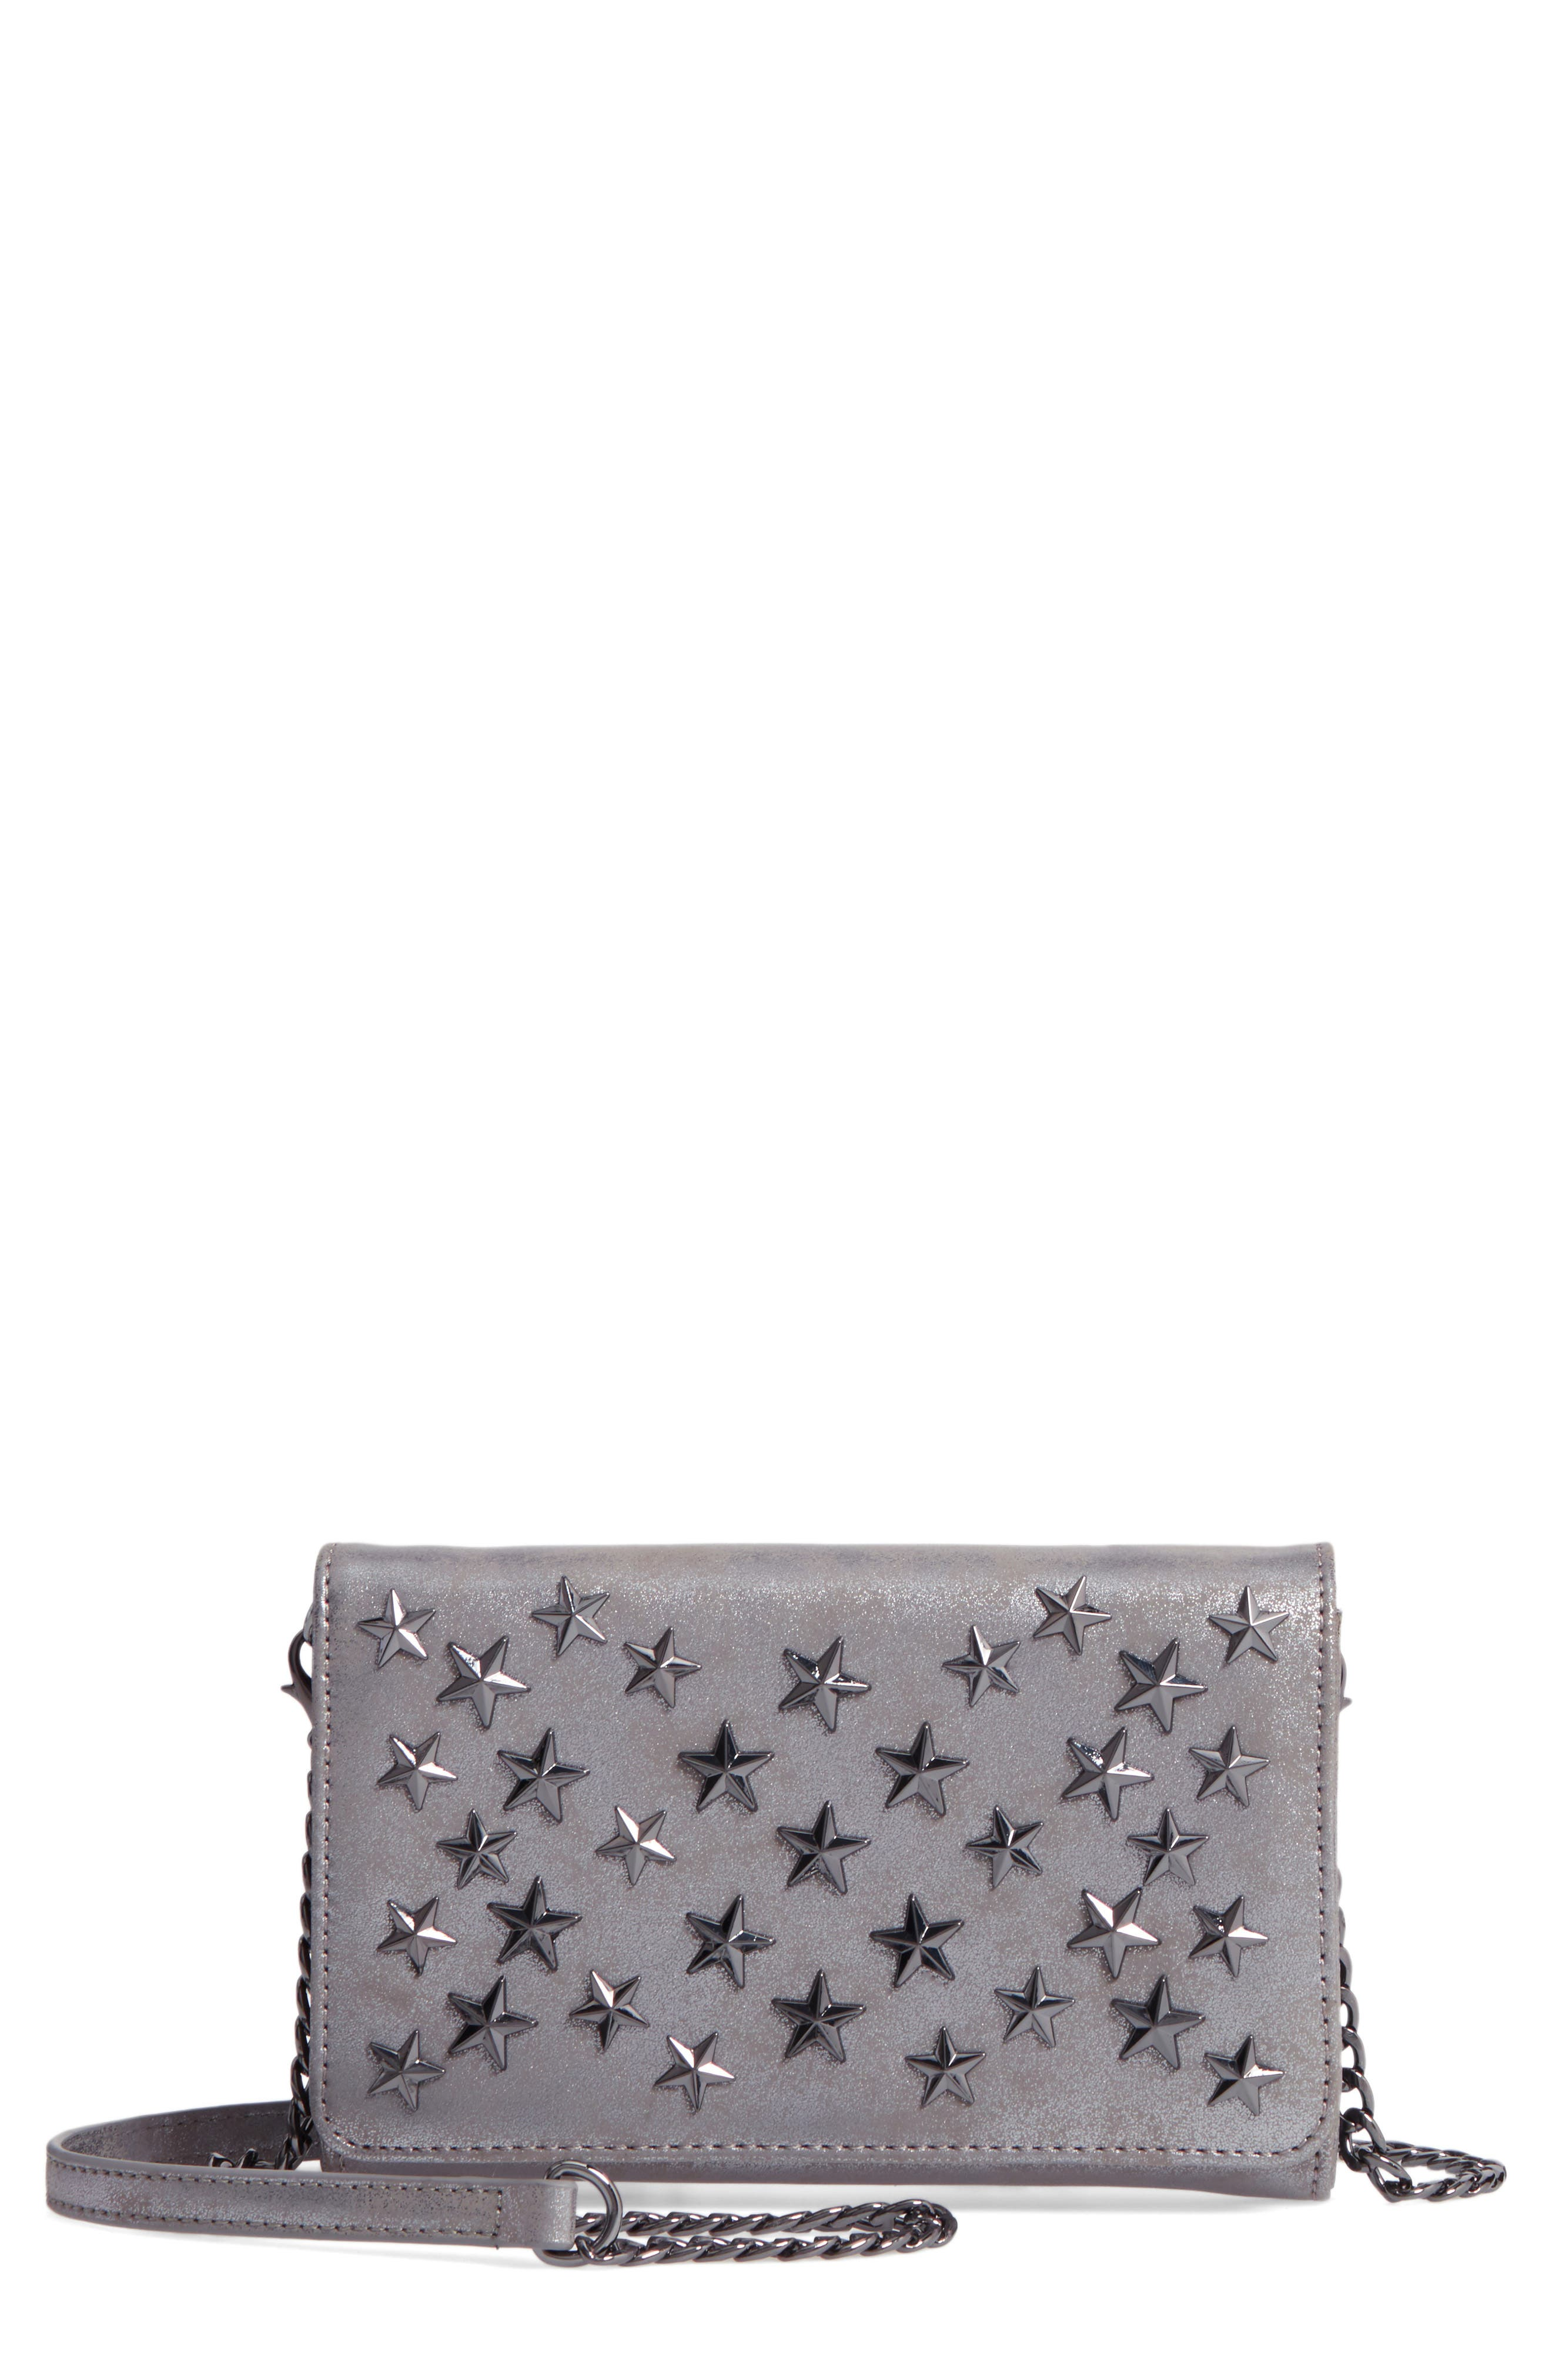 Main Image - Chelsea28 Alexa Stars Faux Leather Wallet on a Chain